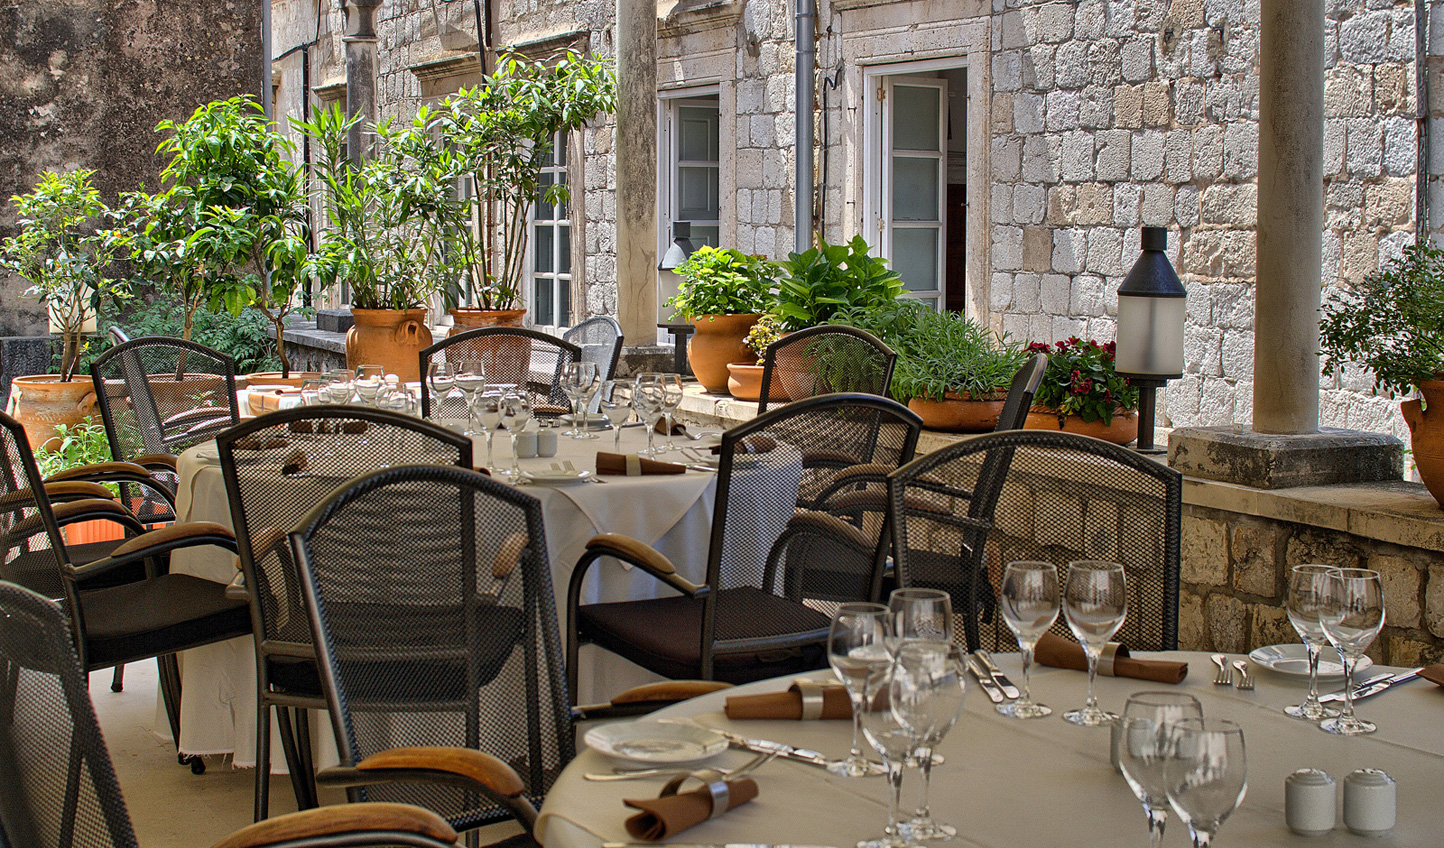 Enjoy al fresco dining at La Capella